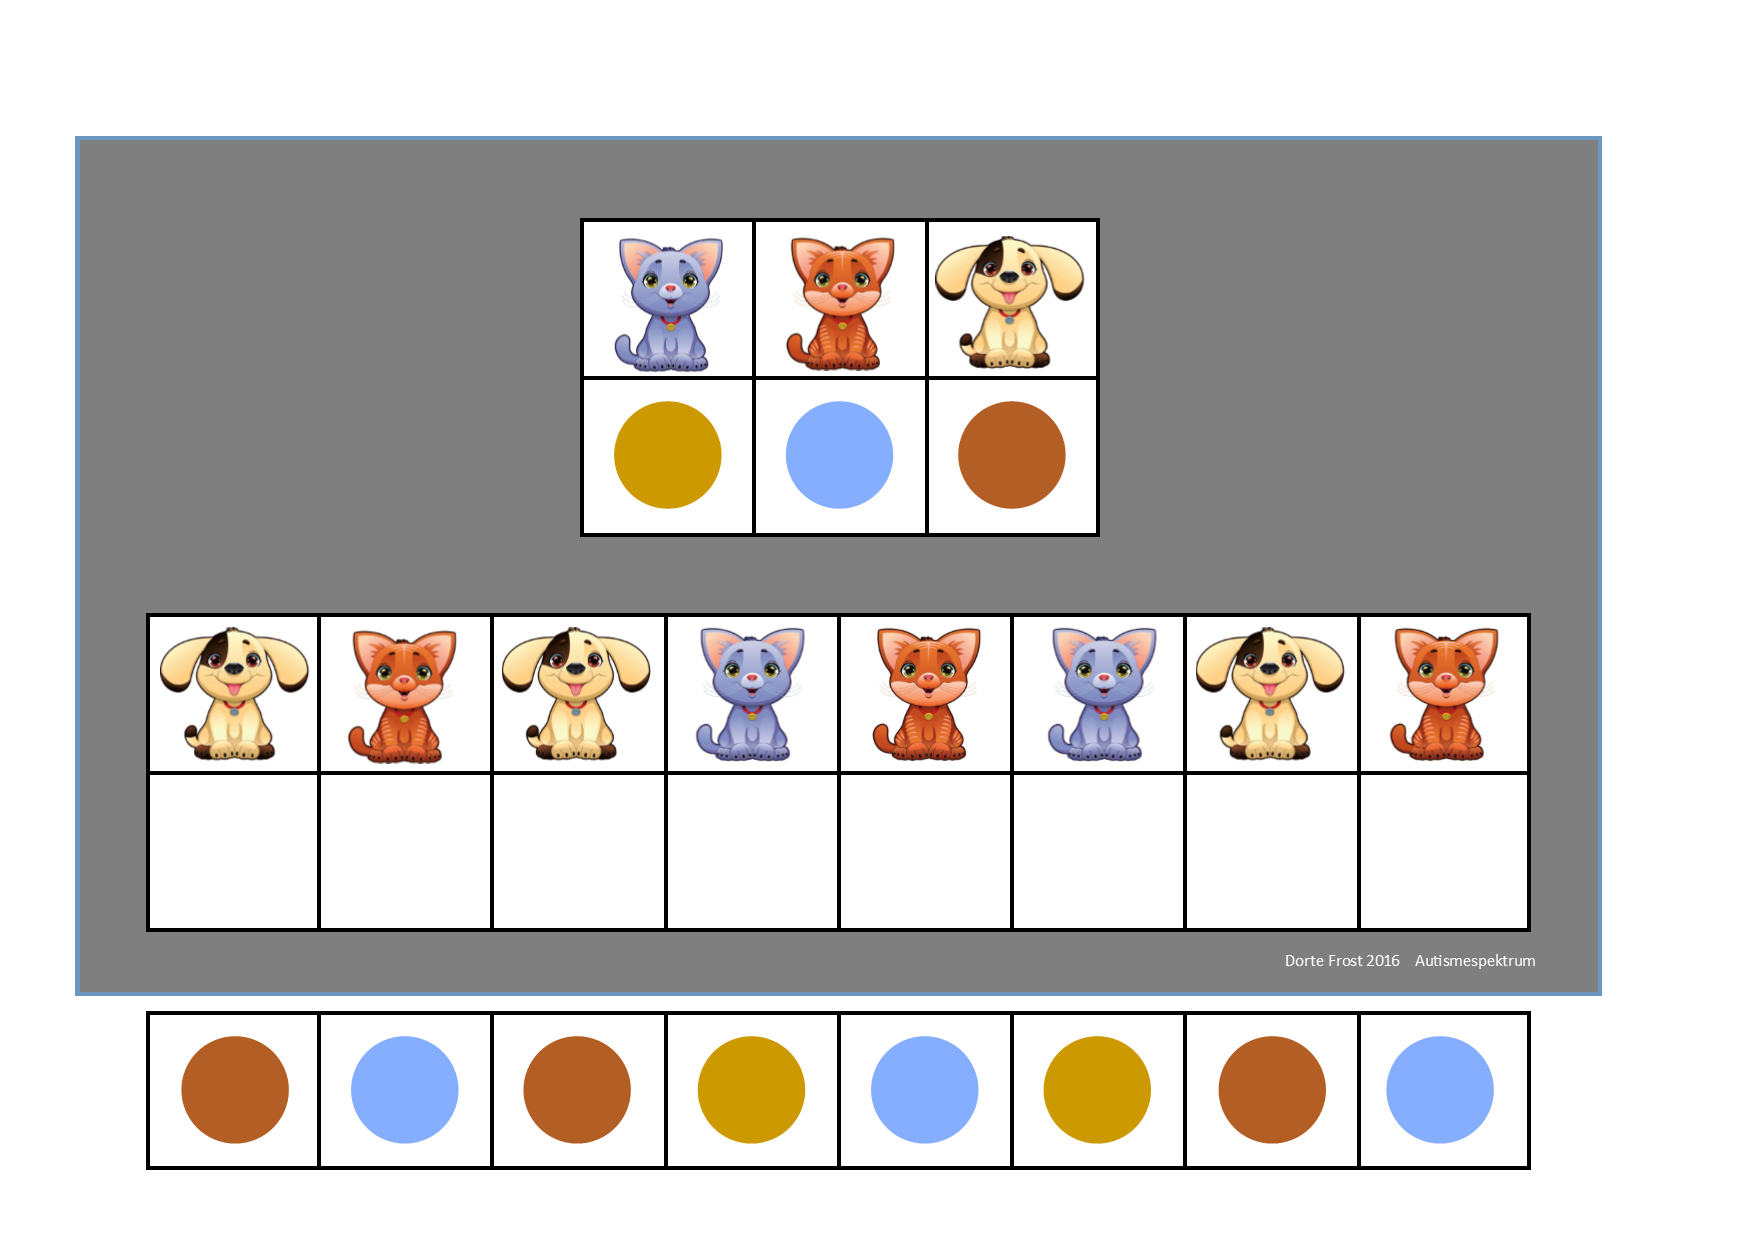 Board And Tiles For The 3 Pets Visual Perception Game By